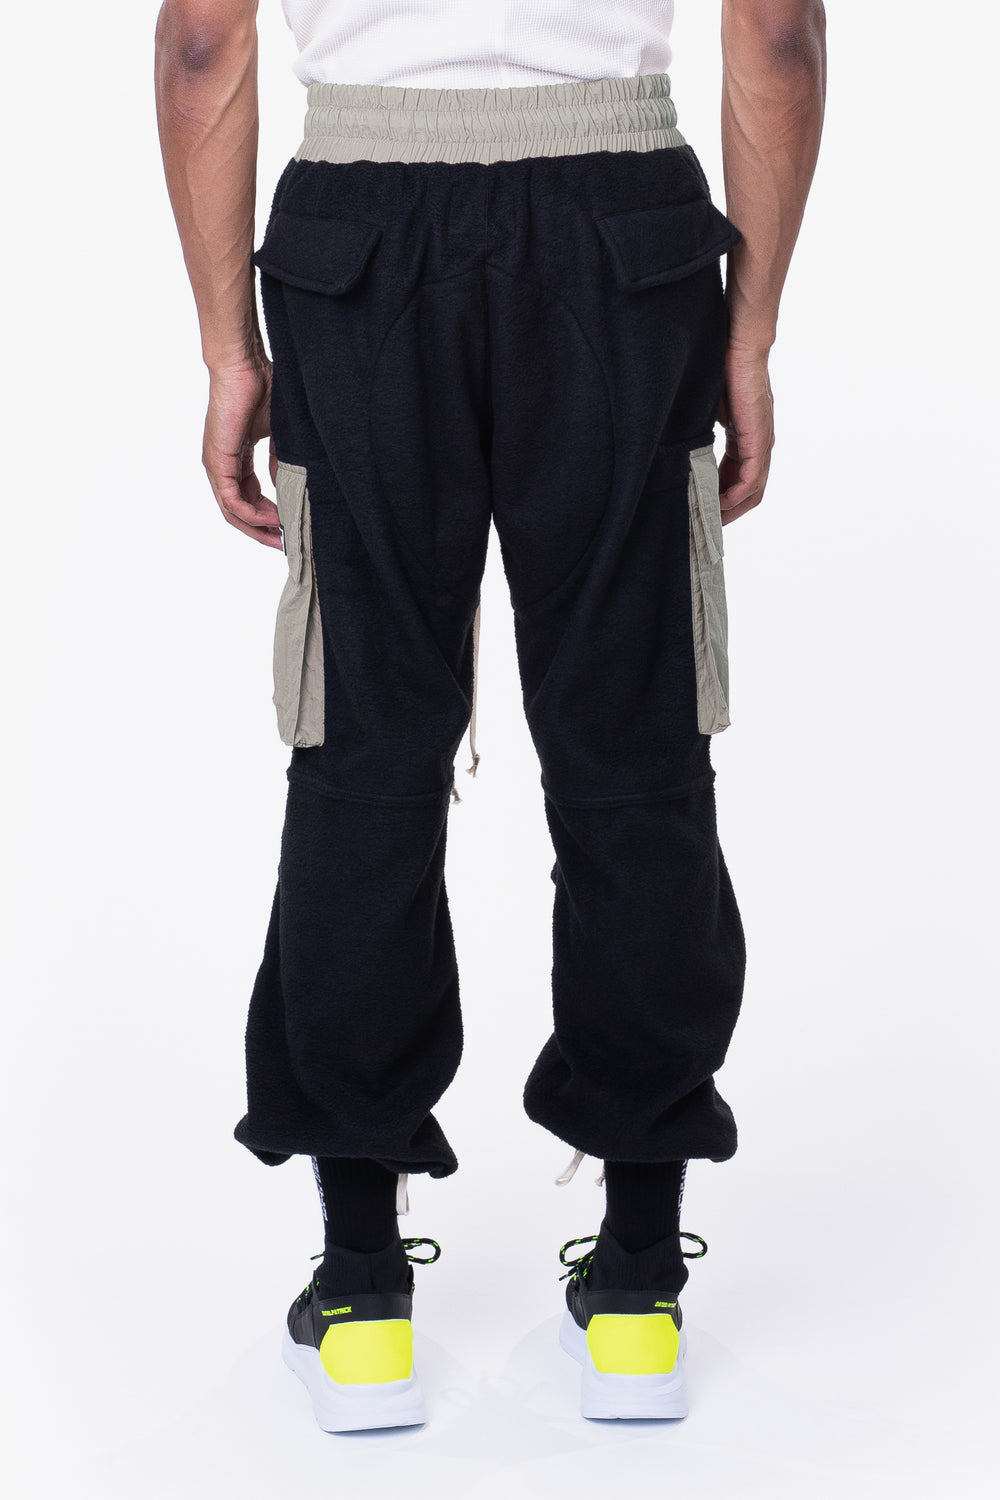 M93 cargo pant / black polar + smog grey